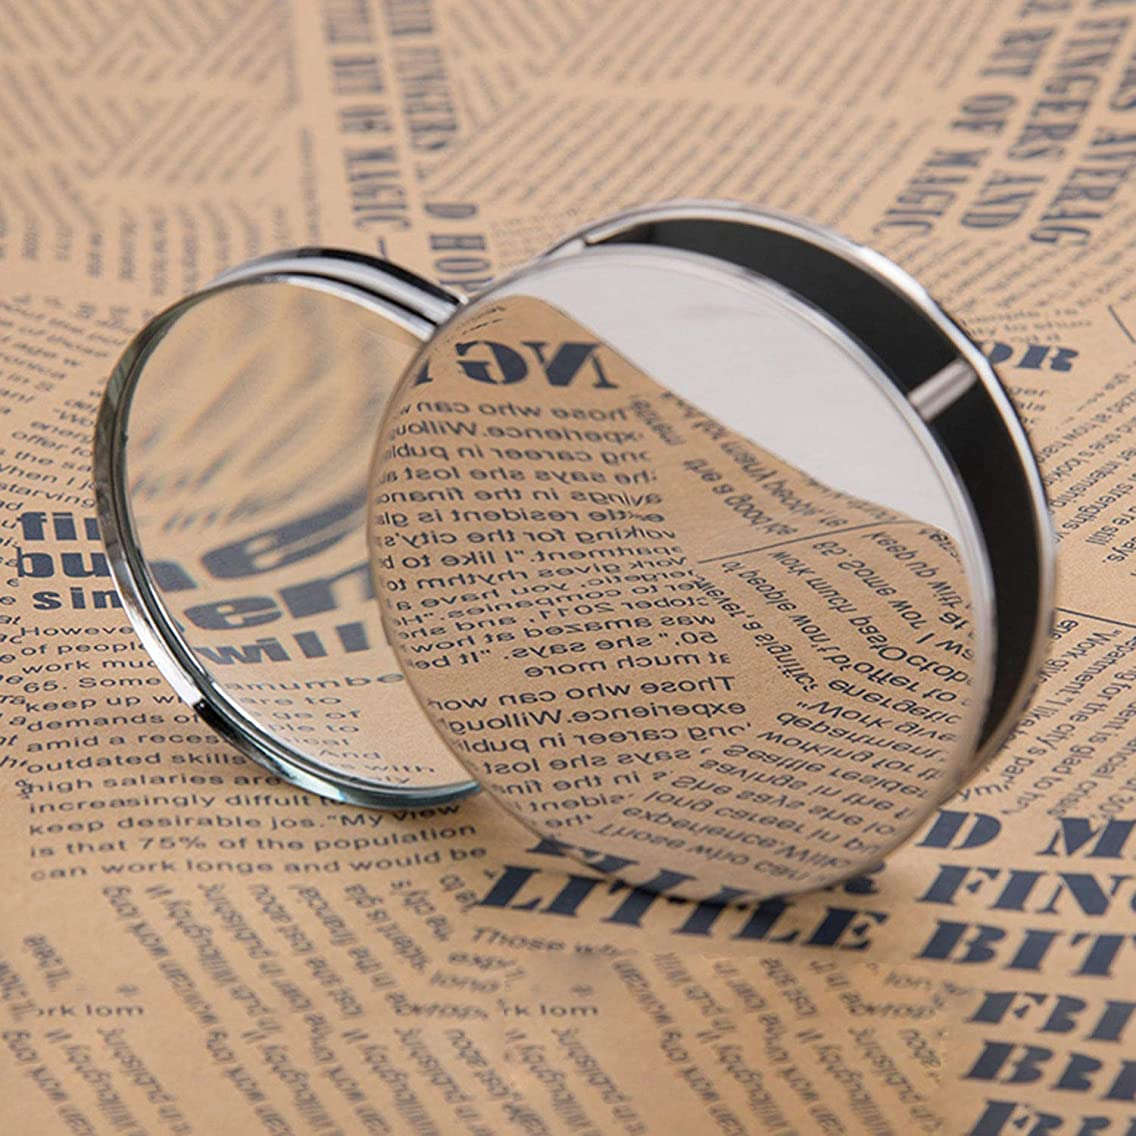 Magnifier Loupes 20X Magnifying Glass Portable Folding Compact Desktop Pocket Magnifier Jewelry Loupe Metal Reading Magnifying Glass Lens Eye Loupe for Inspection Science Office Travel Map Reading